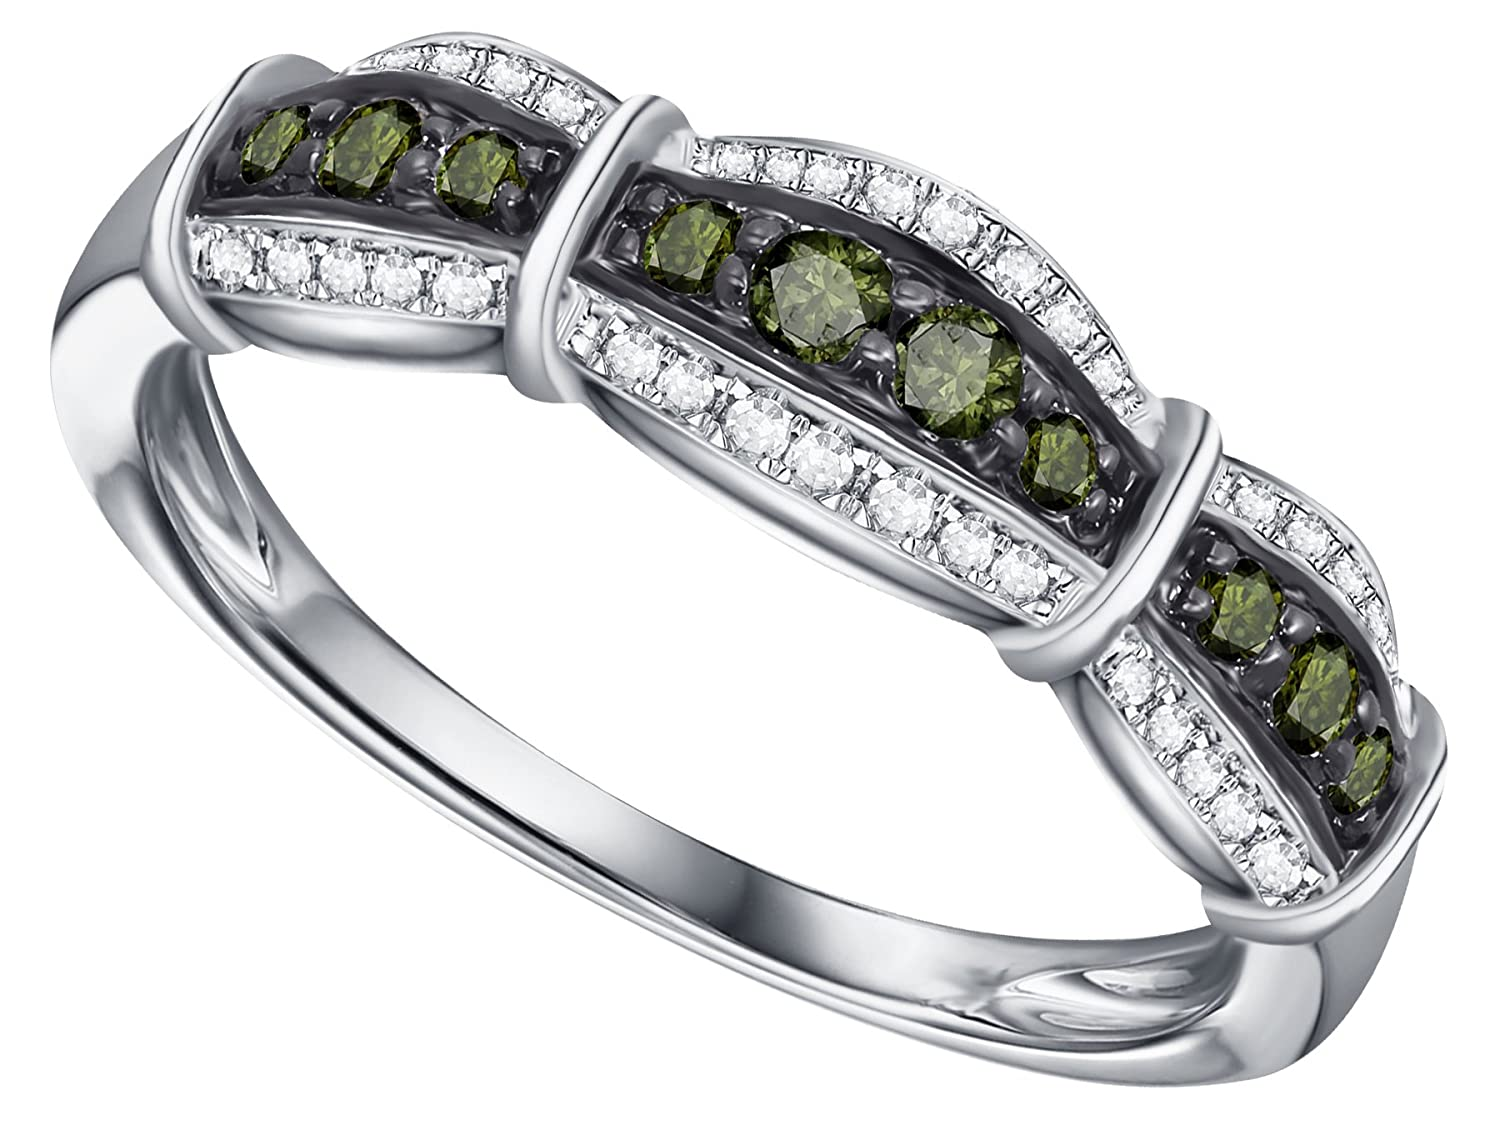 Prism Jewel 0.30Ct Round Green Diamond With Diamond Anniversary Ring